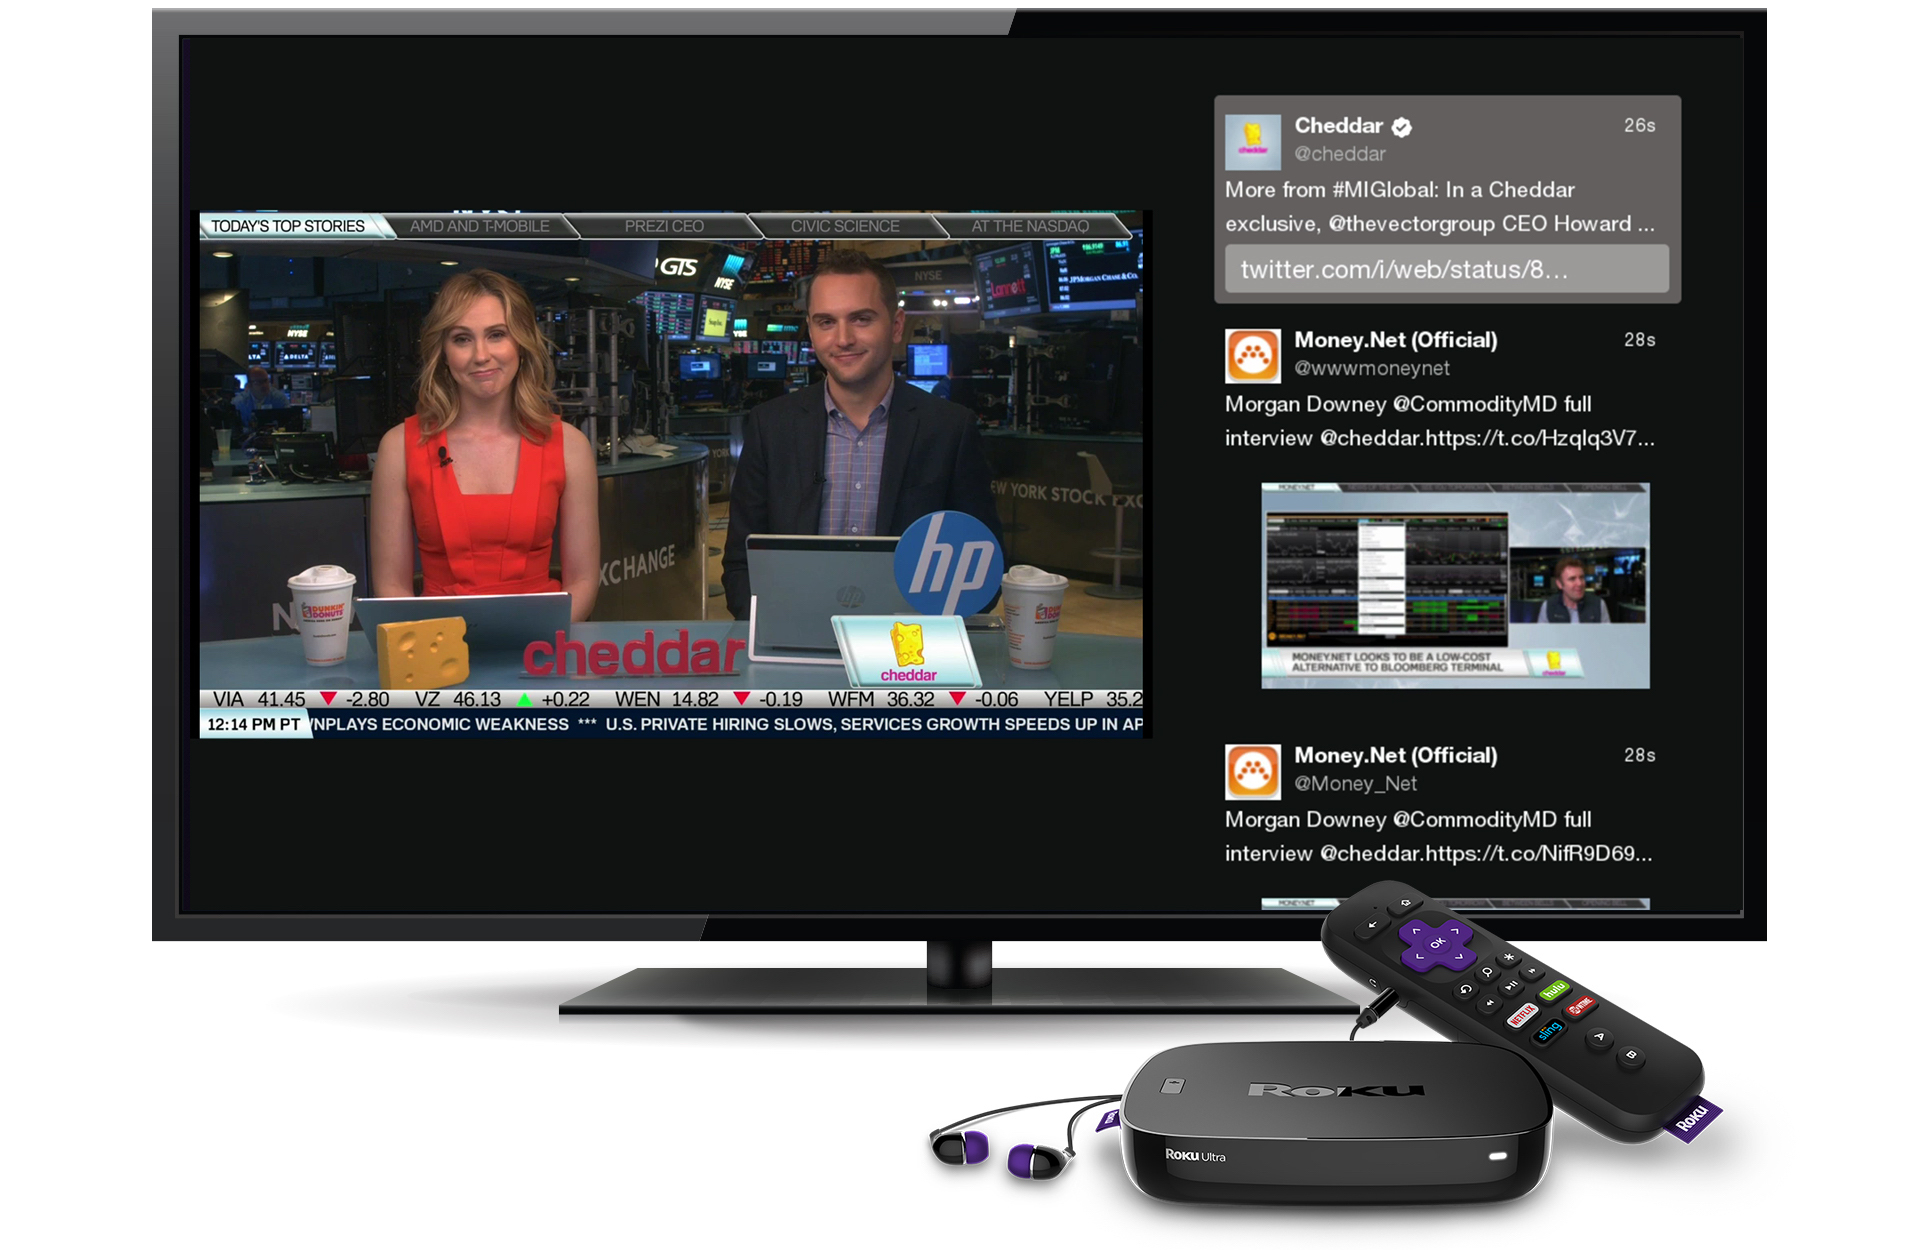 Twitter Live Streaming Video Channel Now Available on Roku Devices